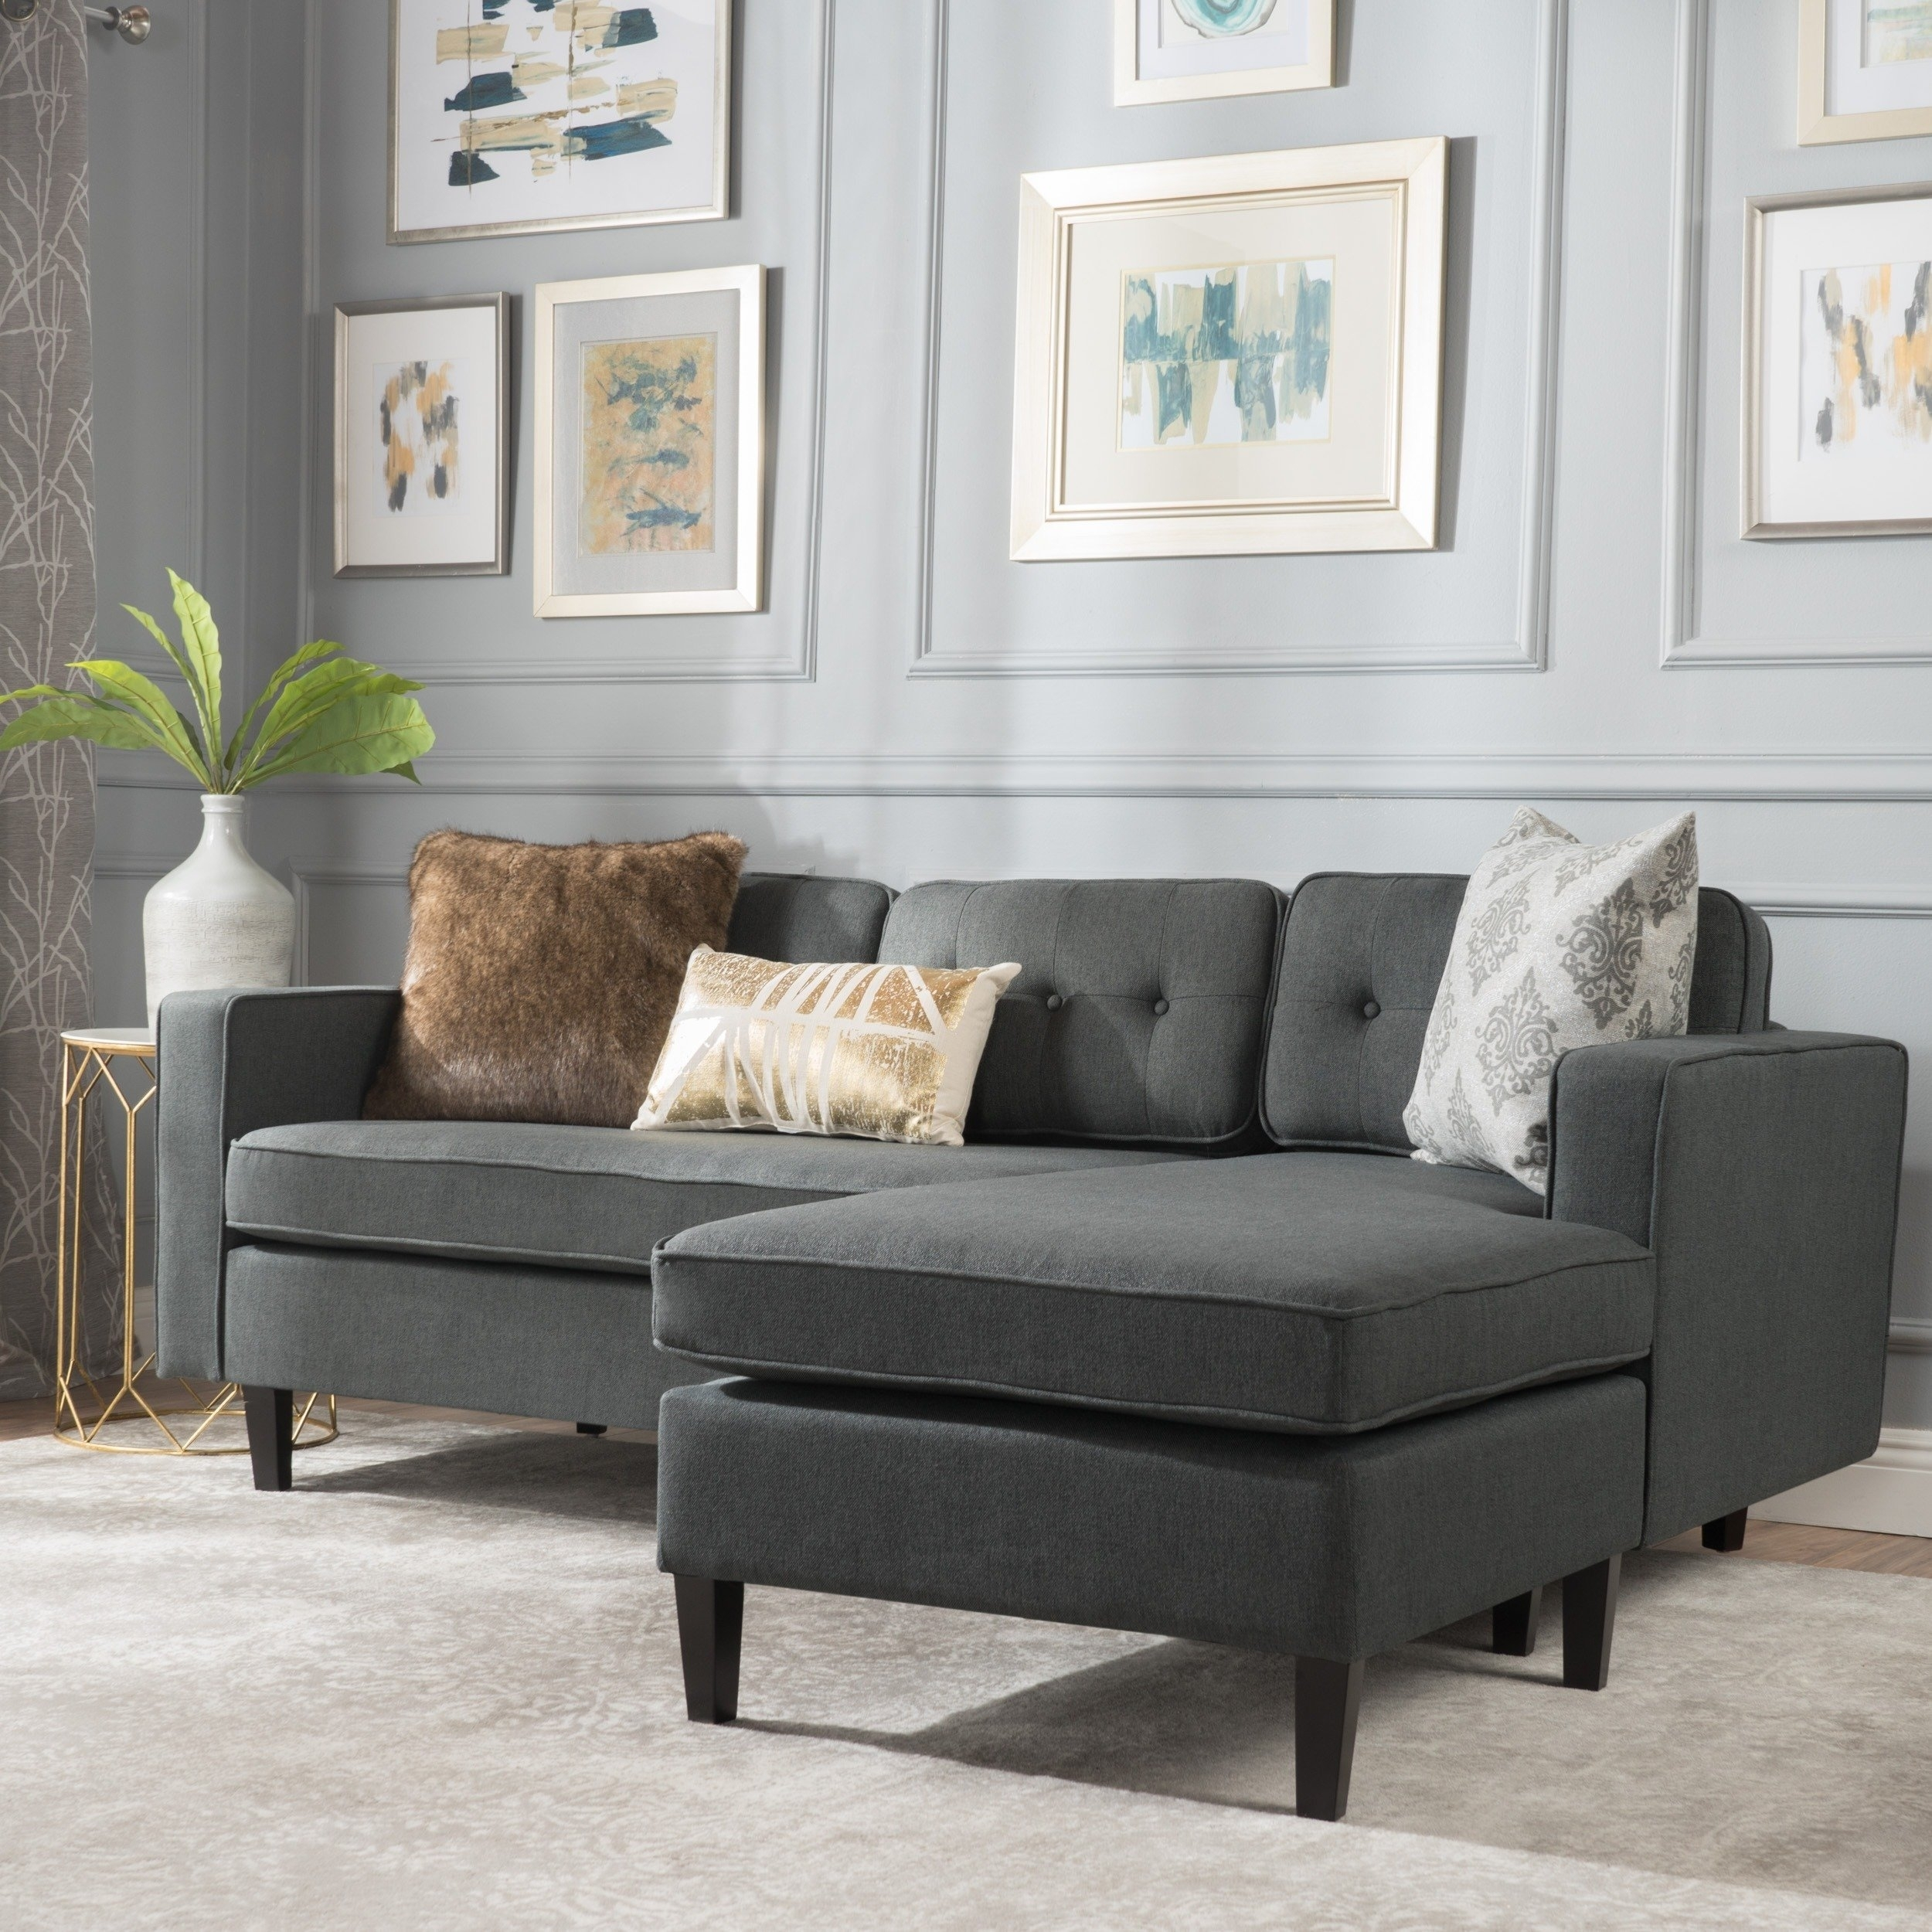 2 Piece Chaise Sectional Sofa | Baci Living Room Pertaining To Tenny Dark Grey 2 Piece Right Facing Chaise Sectionals With 2 Headrest (Image 1 of 25)